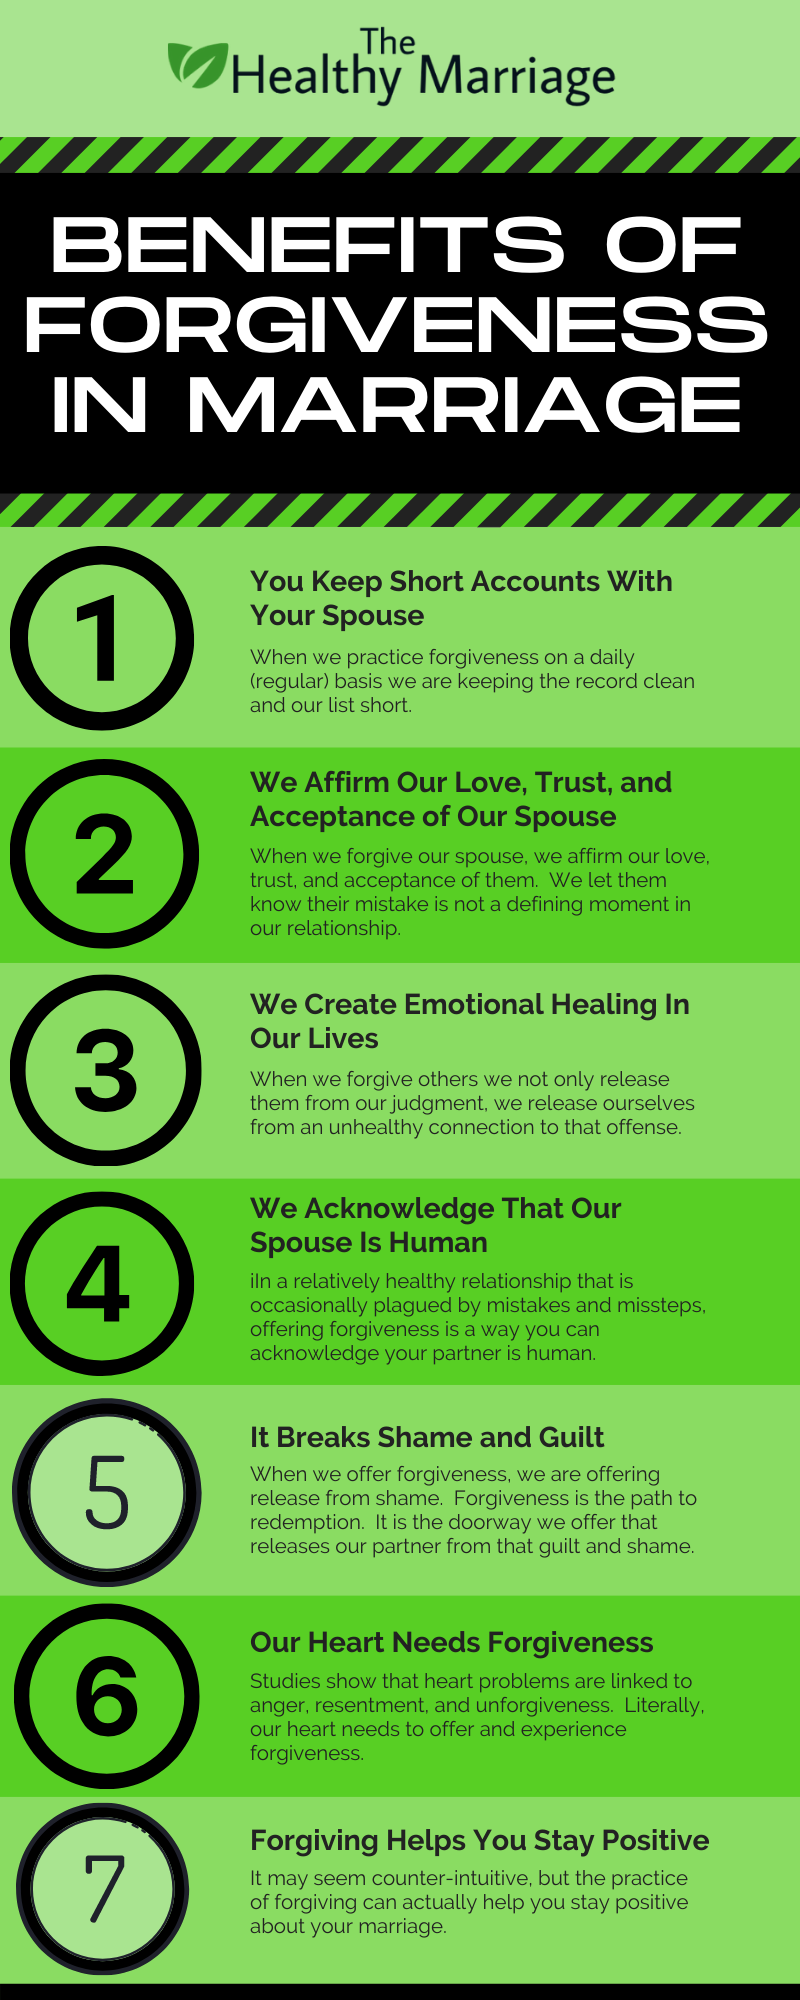 Infographic on the 7 benefits of forgiveness in marriage